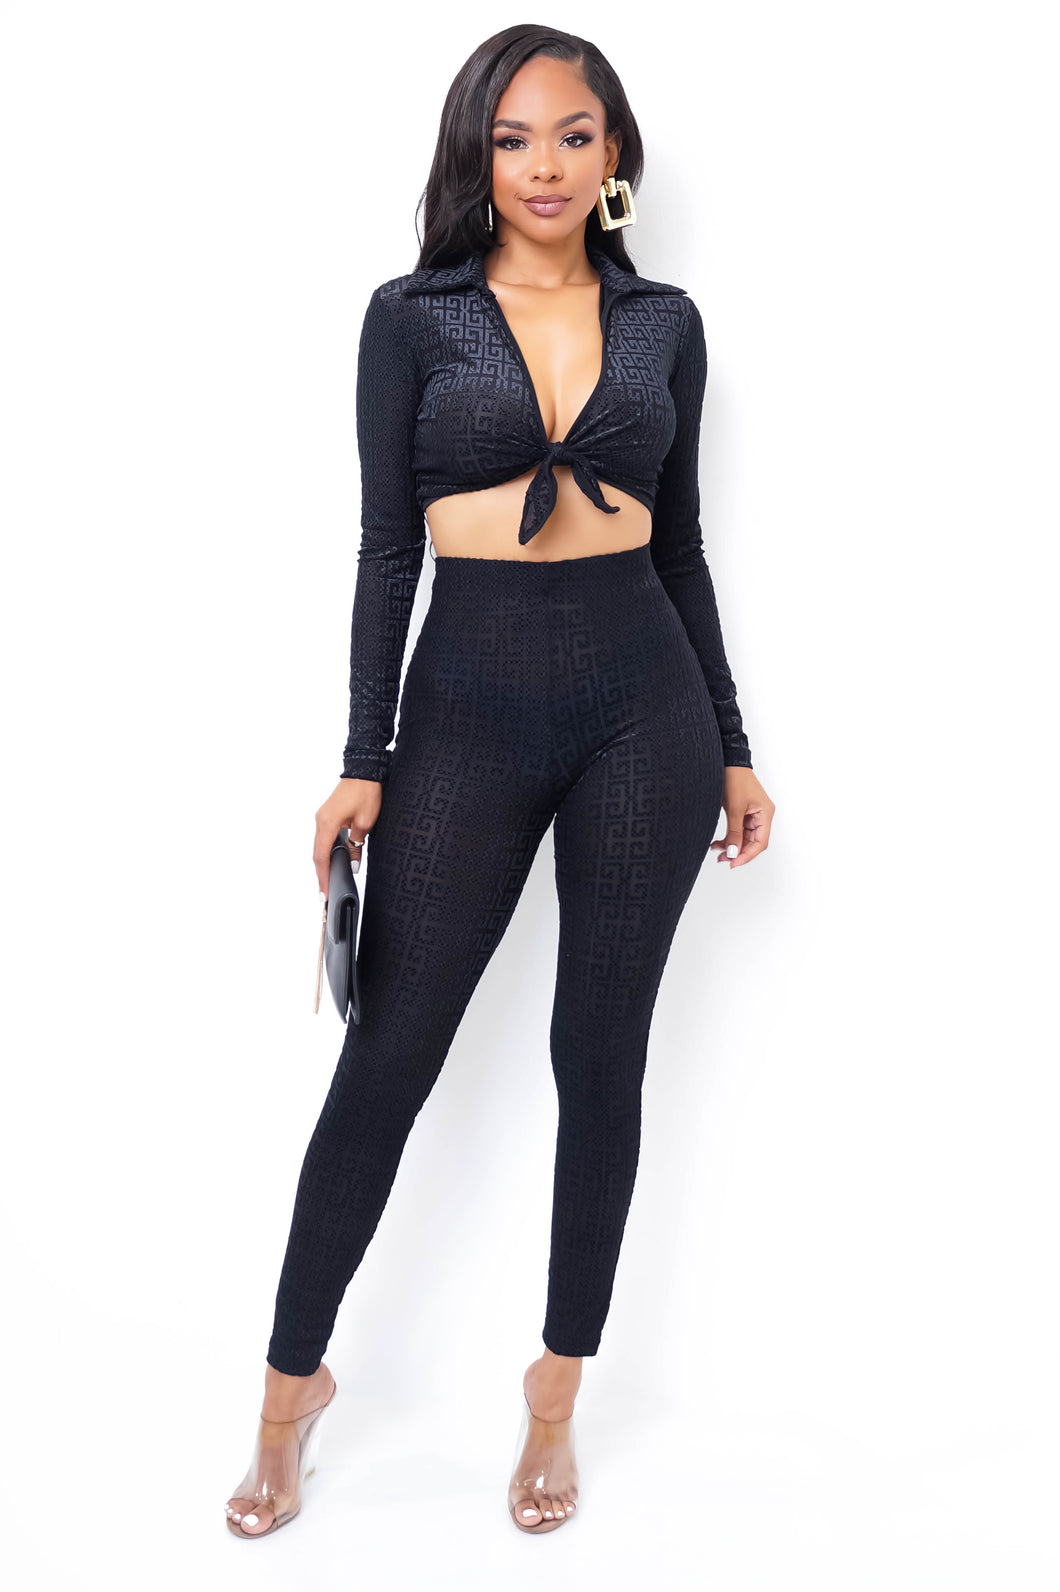 Demetria Two Piece Pant Set - Black